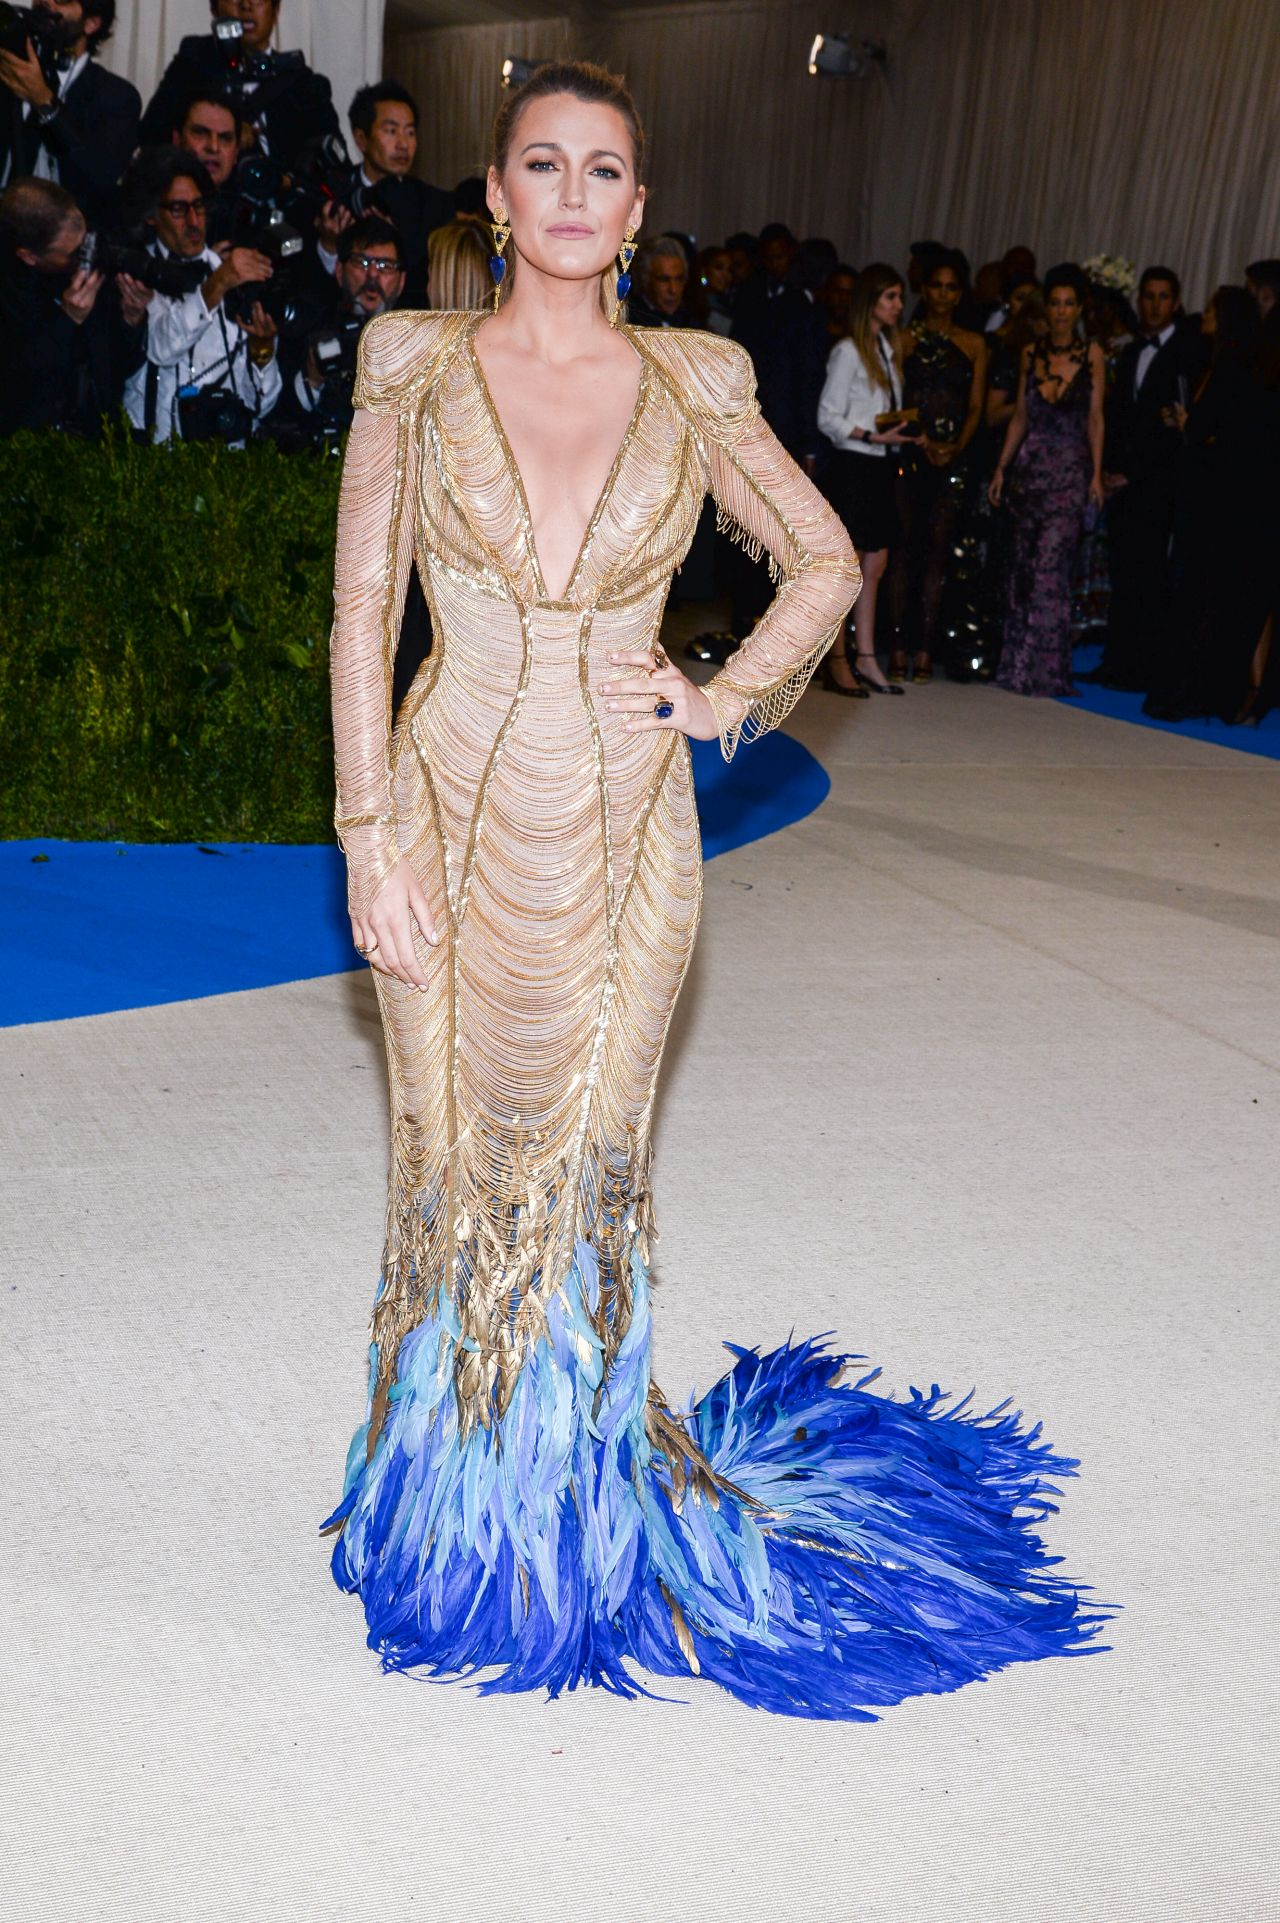 style-goddess-look-ever-evolving-ethereal-style-blake-lively